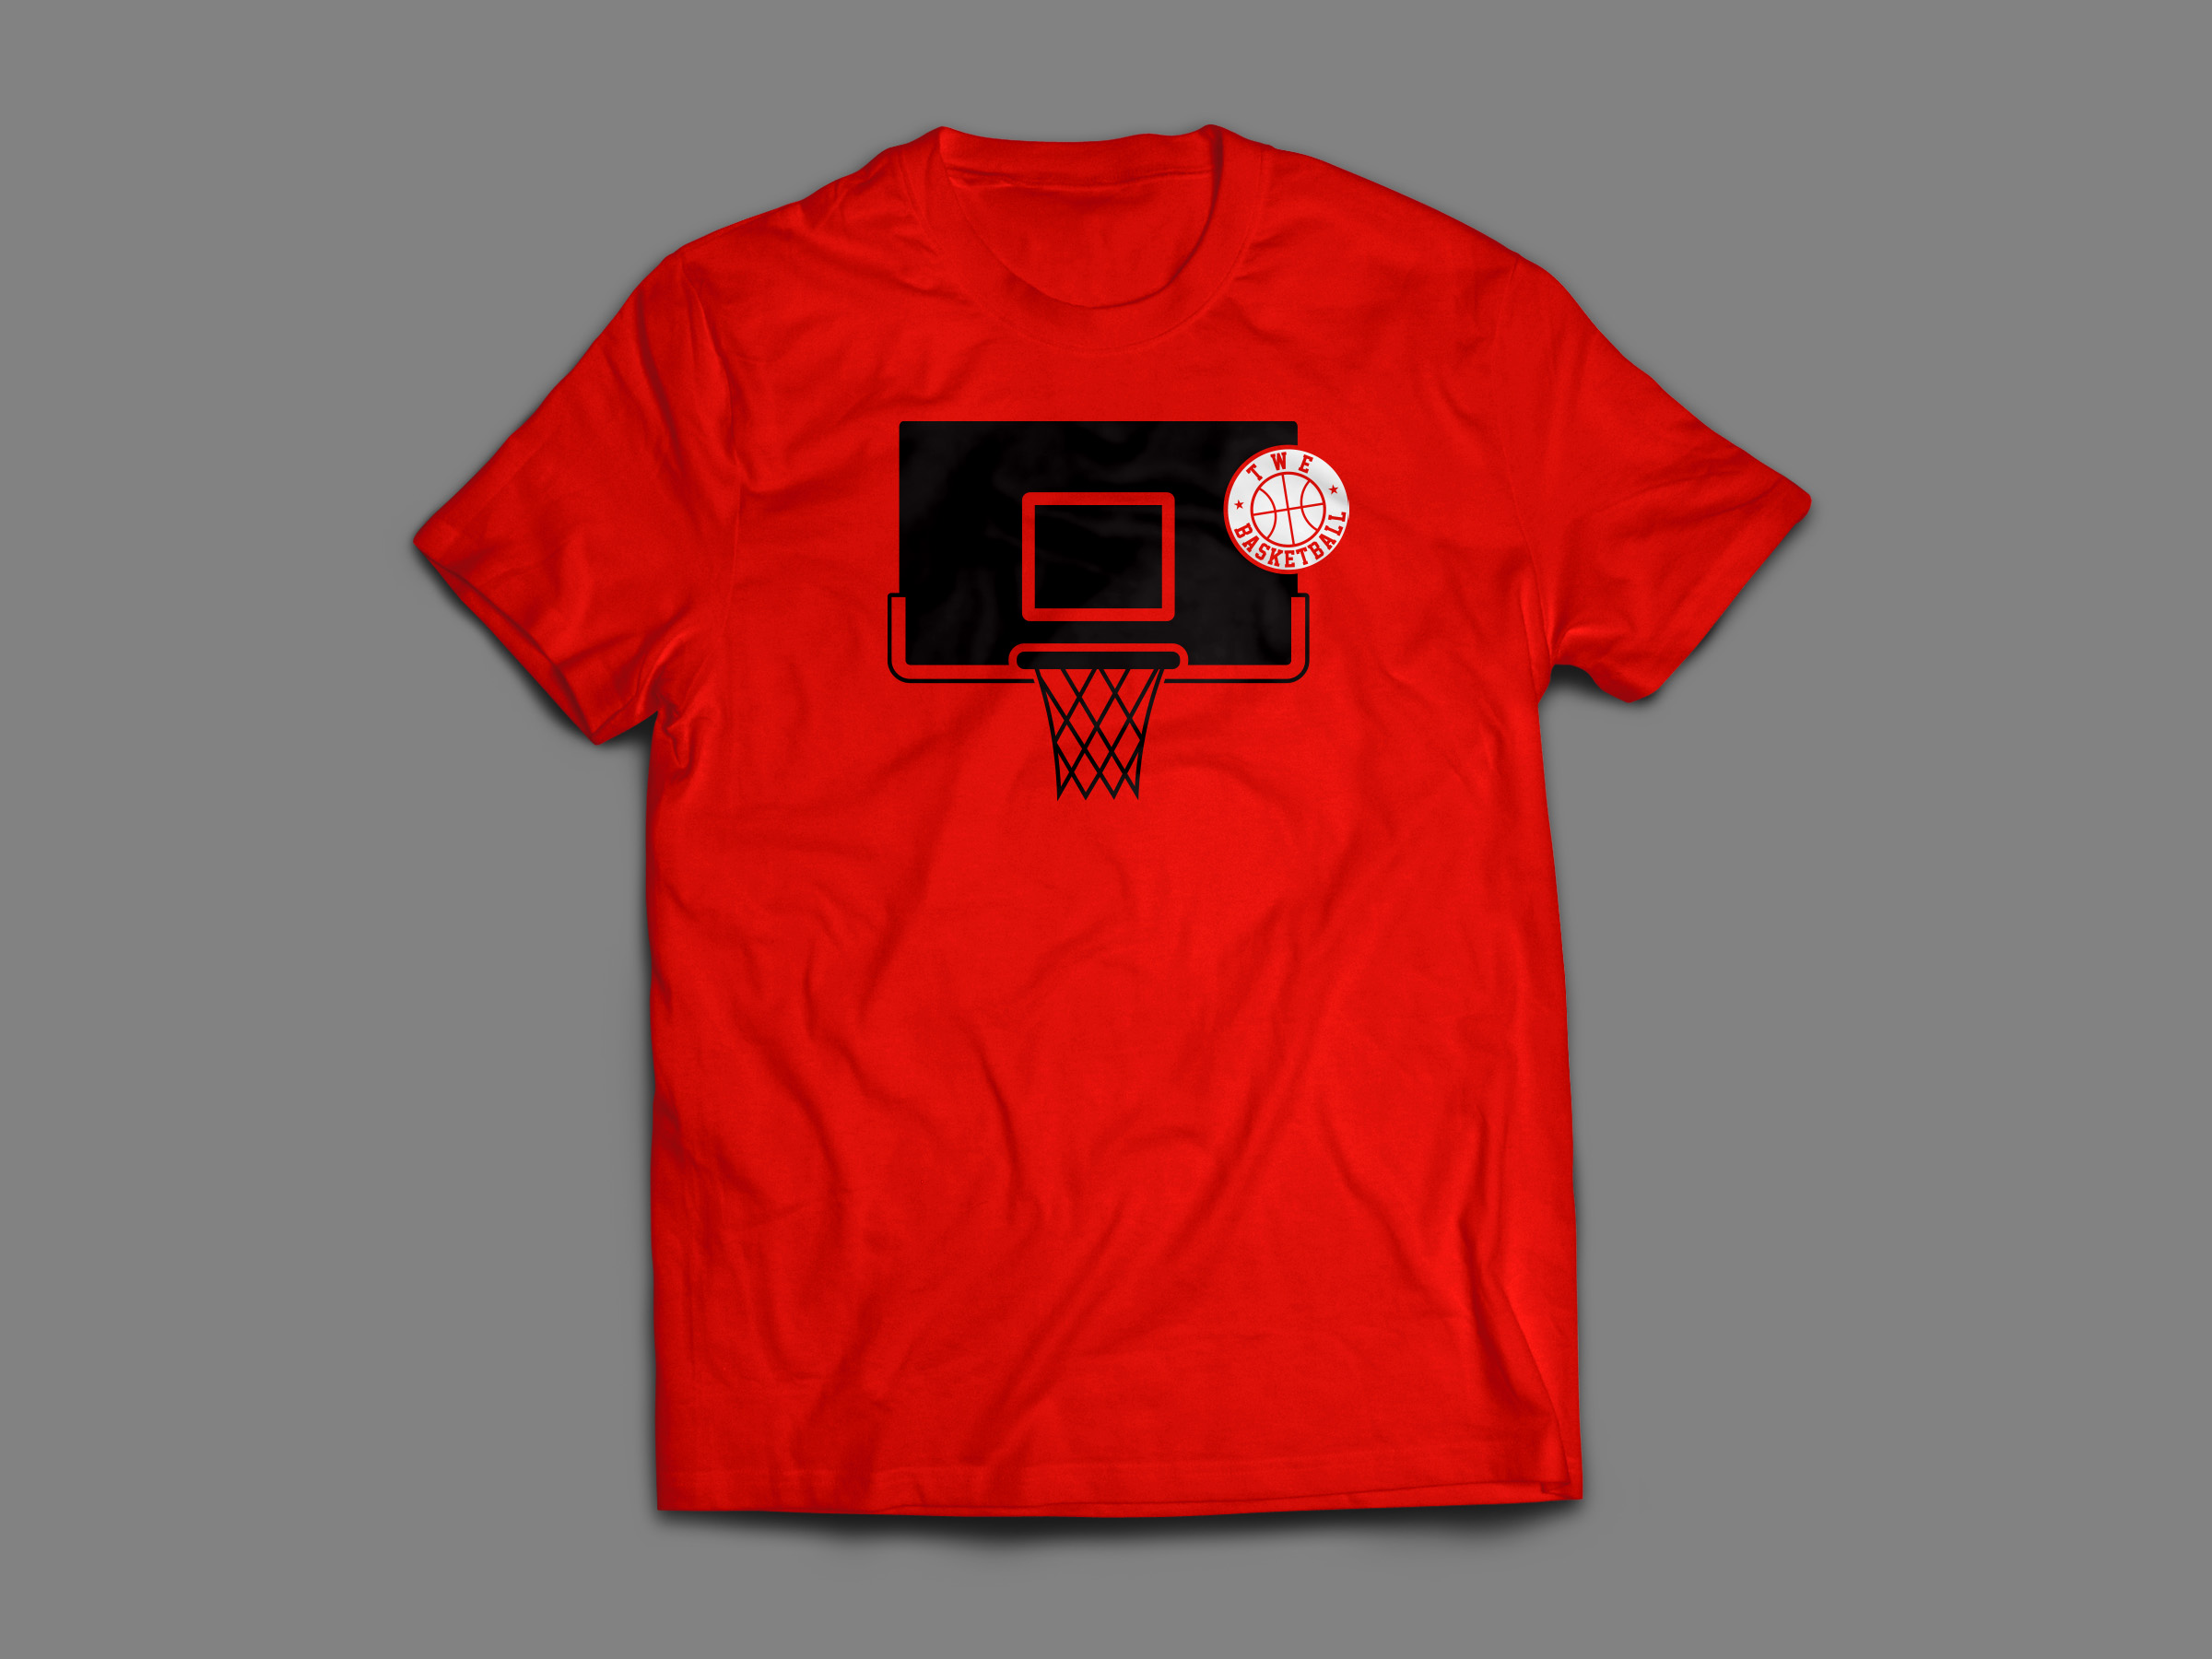 BACKBOARD SPLASH RED